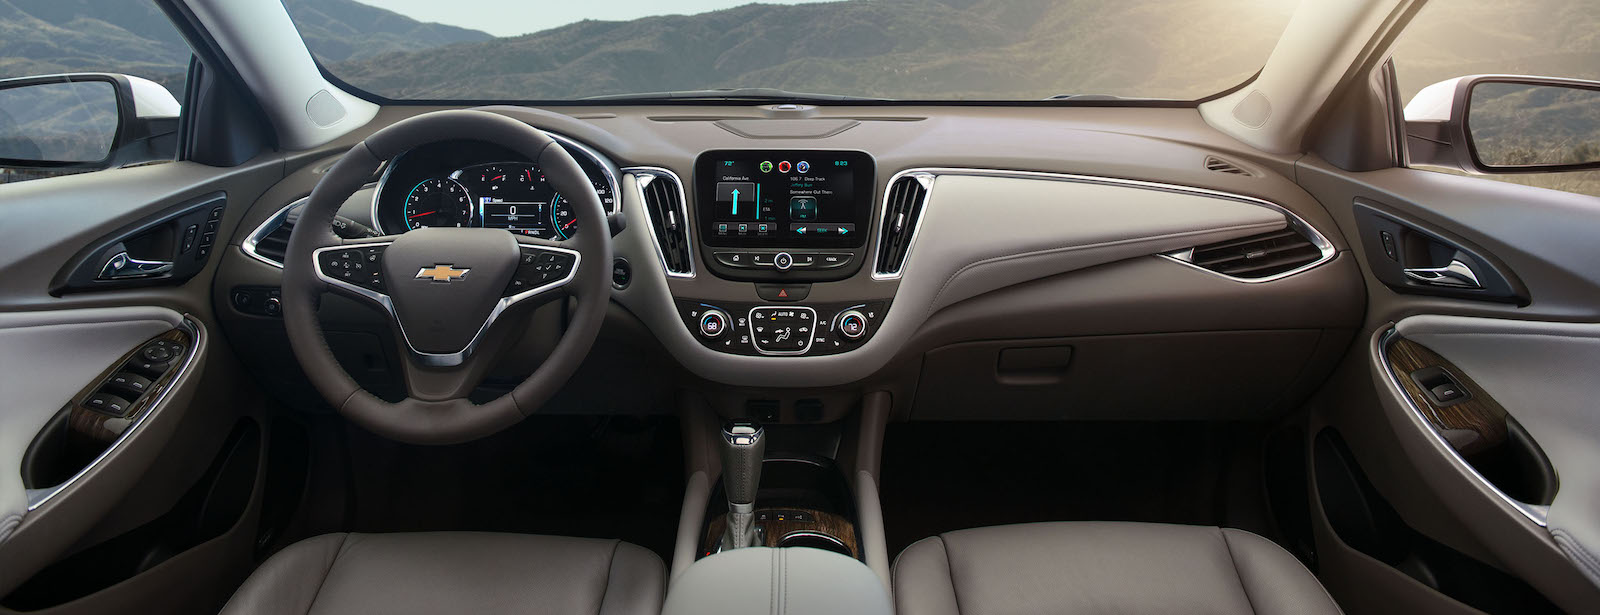 The brown and tan interior of a 2016 Chevy Malibu is shown with mountains near Albany, NY, in the window.